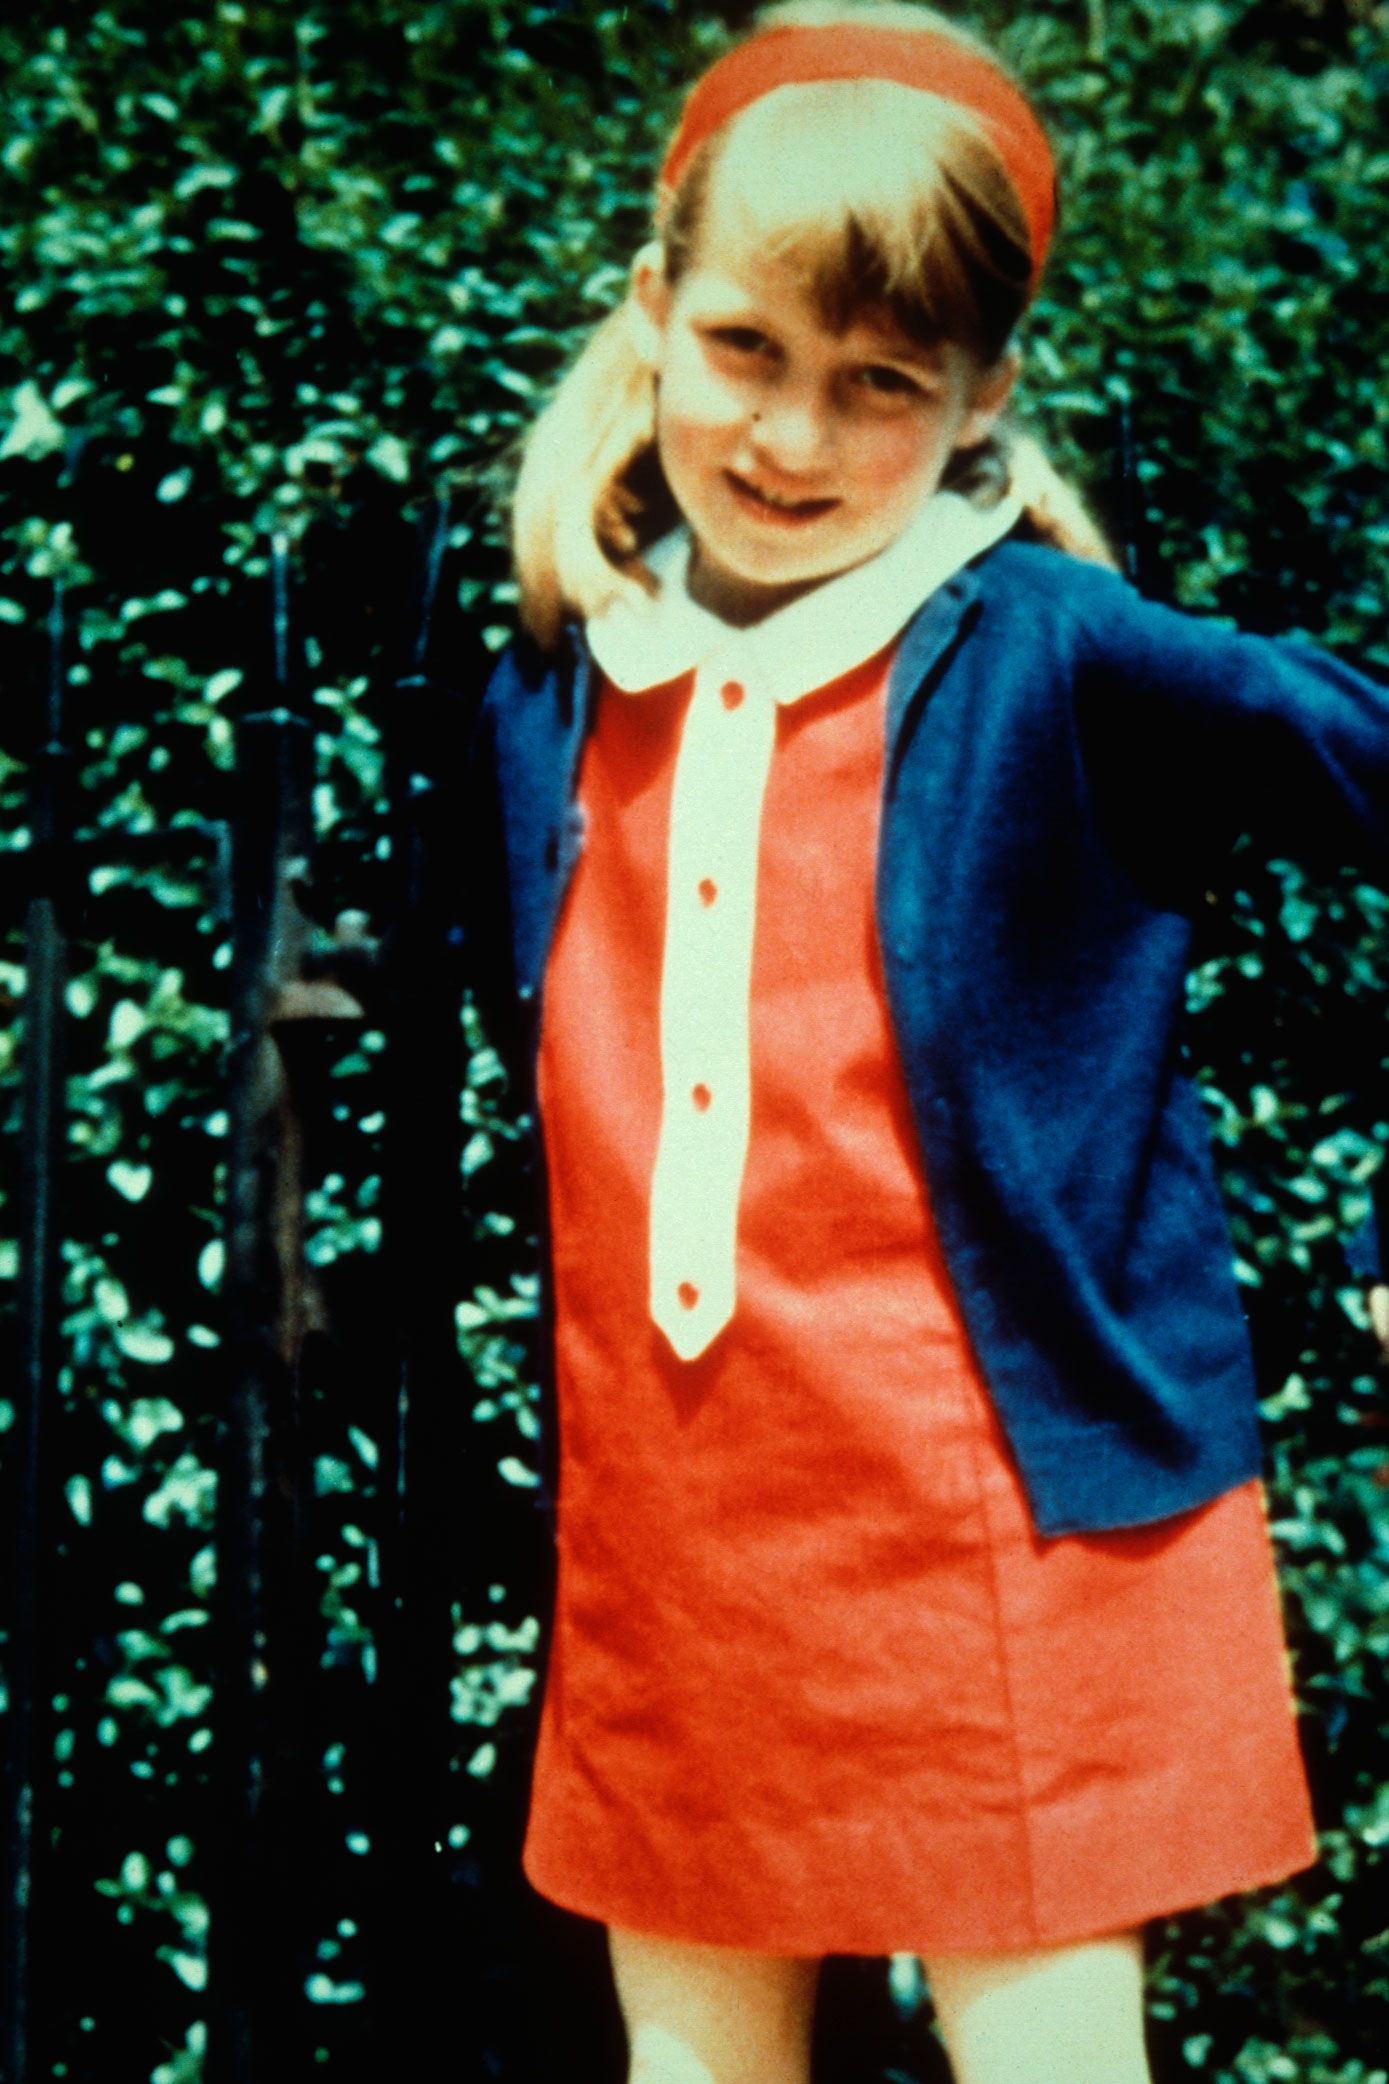 "<p>At one point, Diana attended the West Heath School in Kent, England. When she was 16, she <a href=""http://www.goodhousekeeping.com/life/entertainment/g2812/princess-diana-facts/"" target=""_blank"" data-tracking-id=""recirc-text-link"">failed two exams</a>. By today's standards, this doesn't seem that terrible, but her father wanted to&nbsp&#x3B;enroll&nbsp&#x3B;her in a Swedish boarding when he heard&#x3B; she&nbsp&#x3B;insisted on&nbsp&#x3B;returning home instead.&nbsp&#x3B;</p><p><strong data-redactor-tag=""strong"" data-verified=""redactor"">RELATED: </strong><a href=""http://www.redbookmag.com/life/g3667/diana-princess-of-wales/"" target=""_blank"" data-tracking-id=""recirc-text-link""><strong data-redactor-tag=""strong"" data-verified=""redactor"">20 Beautiful Photos of Princess Diana At Home</strong></a></p>"